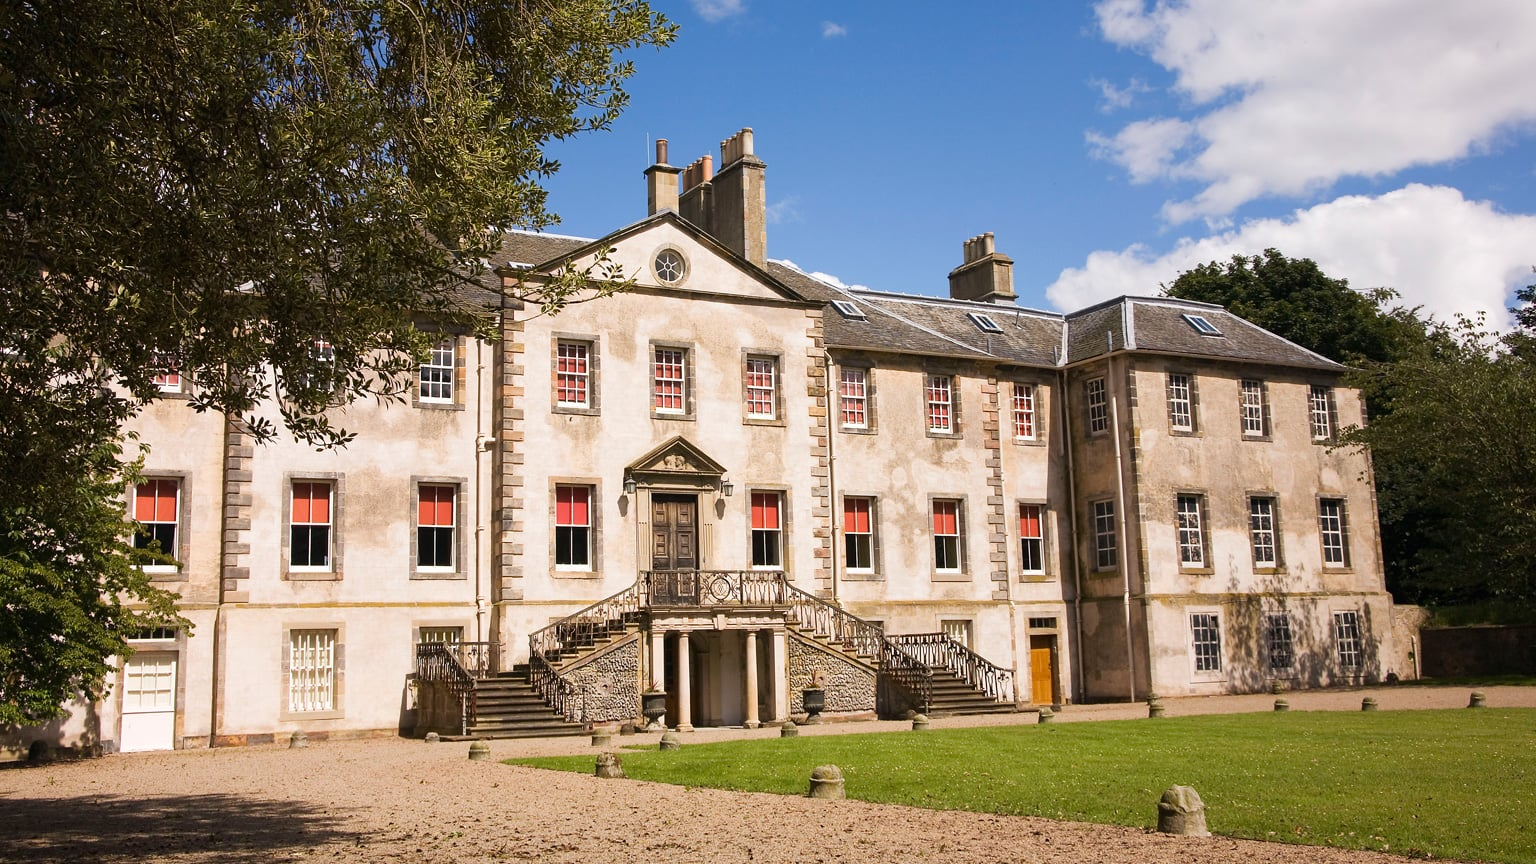 The house at Newhailes